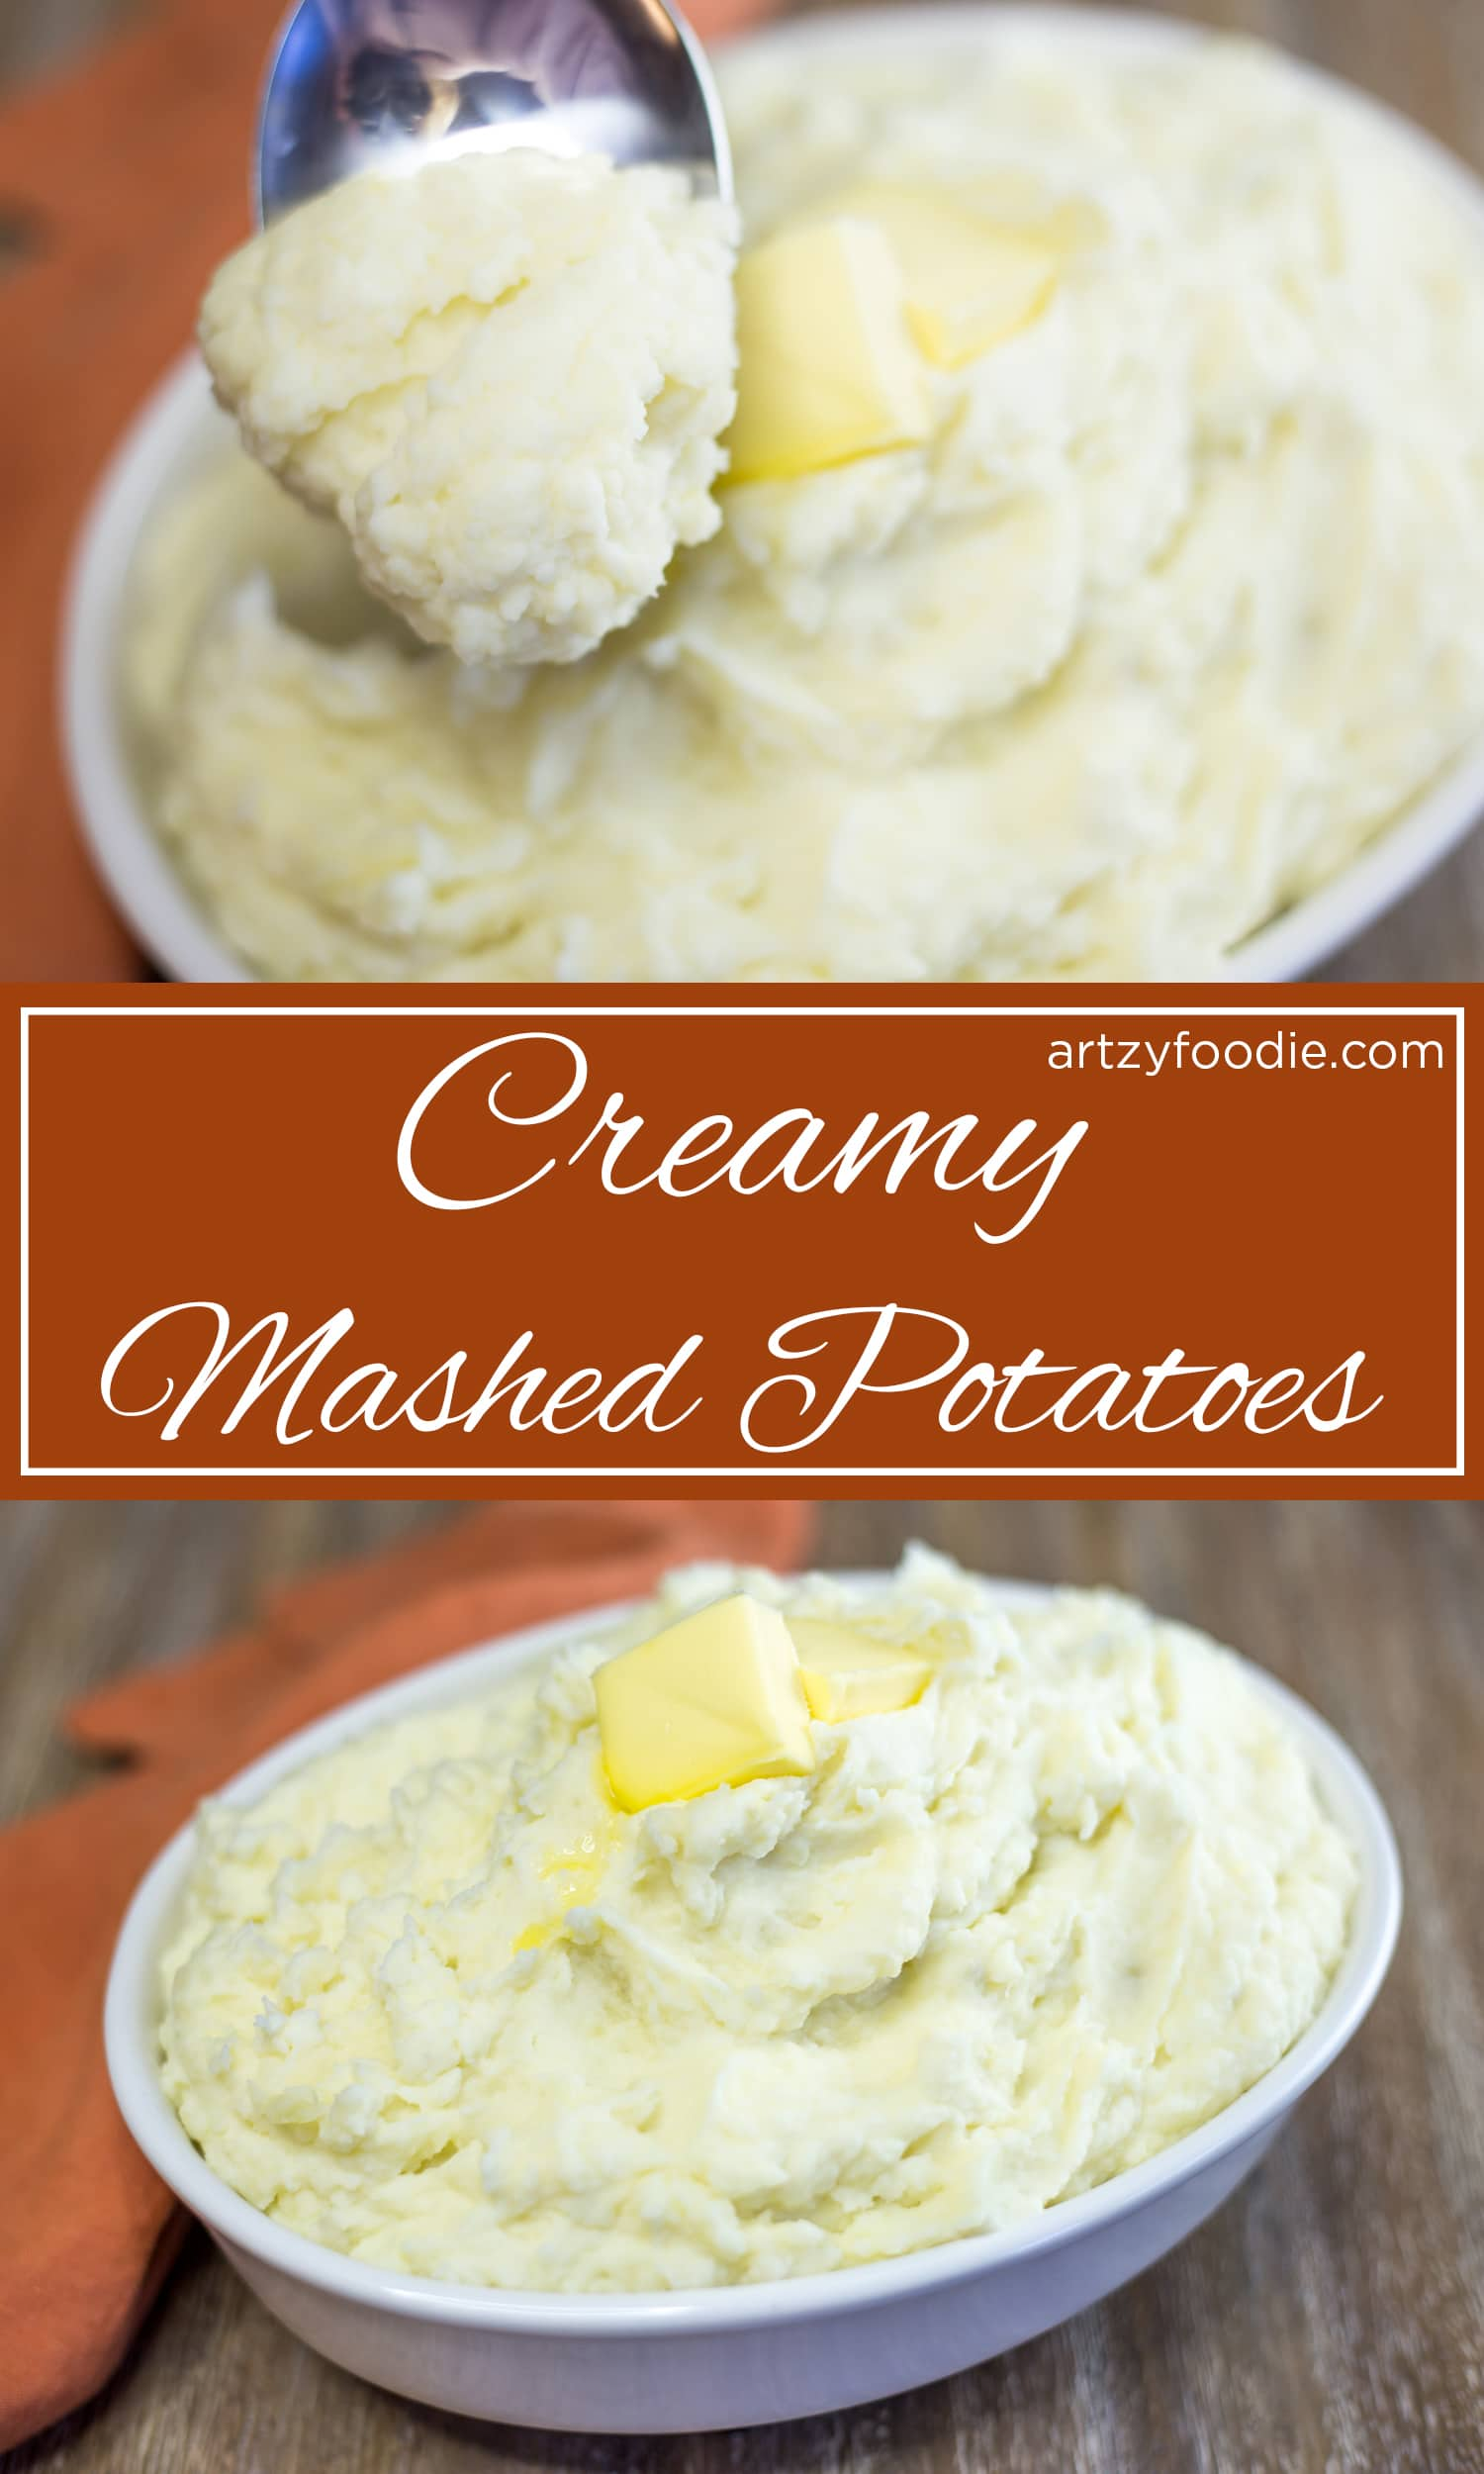 These creamy potatoes with garlic infused heavy cream, butter, sour cream, and salt can't be beat! |artzyfoodie.com|